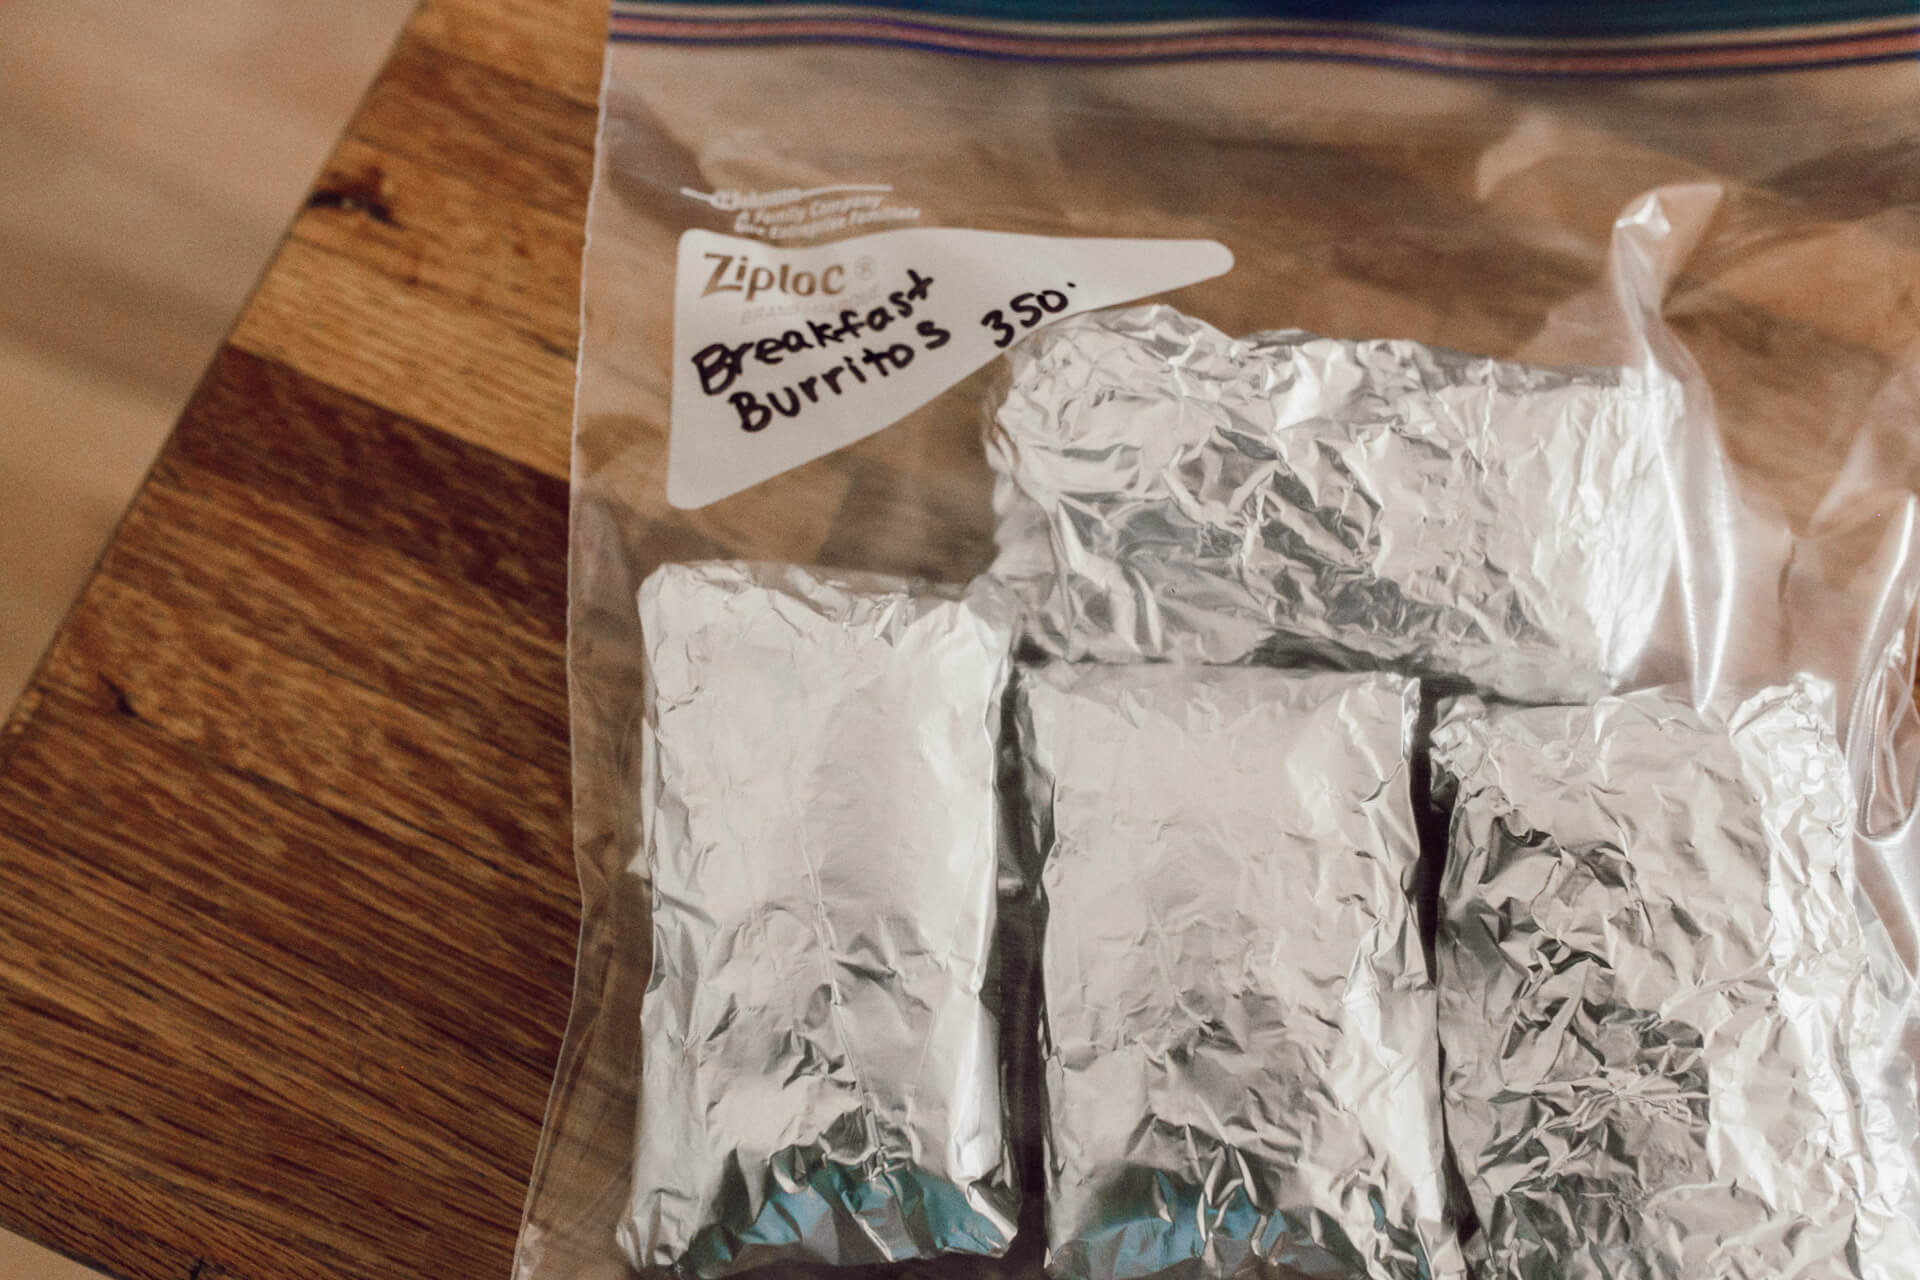 freeze your burritos in tin foil and side by side